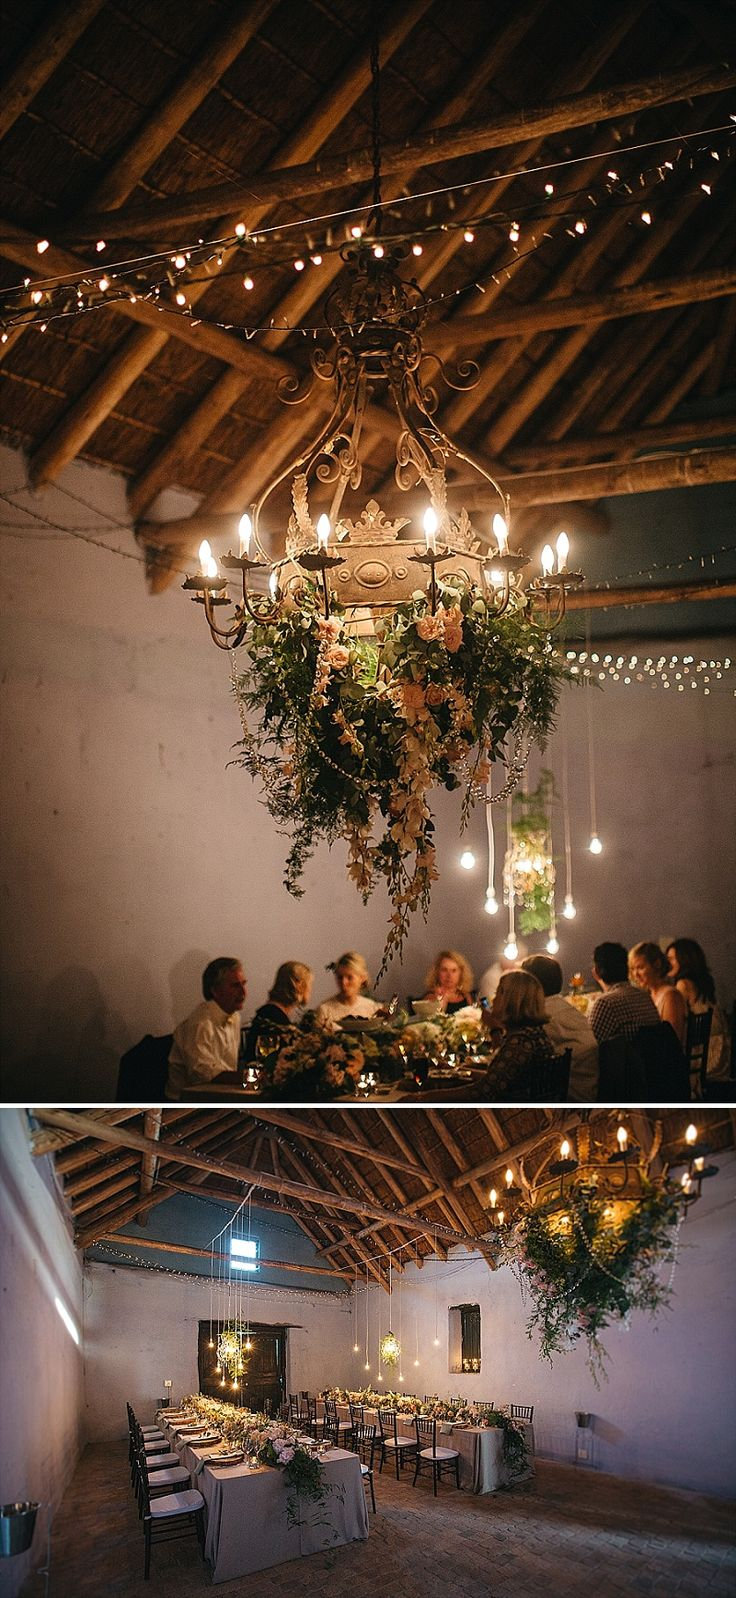 Lighting details in rustic-style farmhouse.